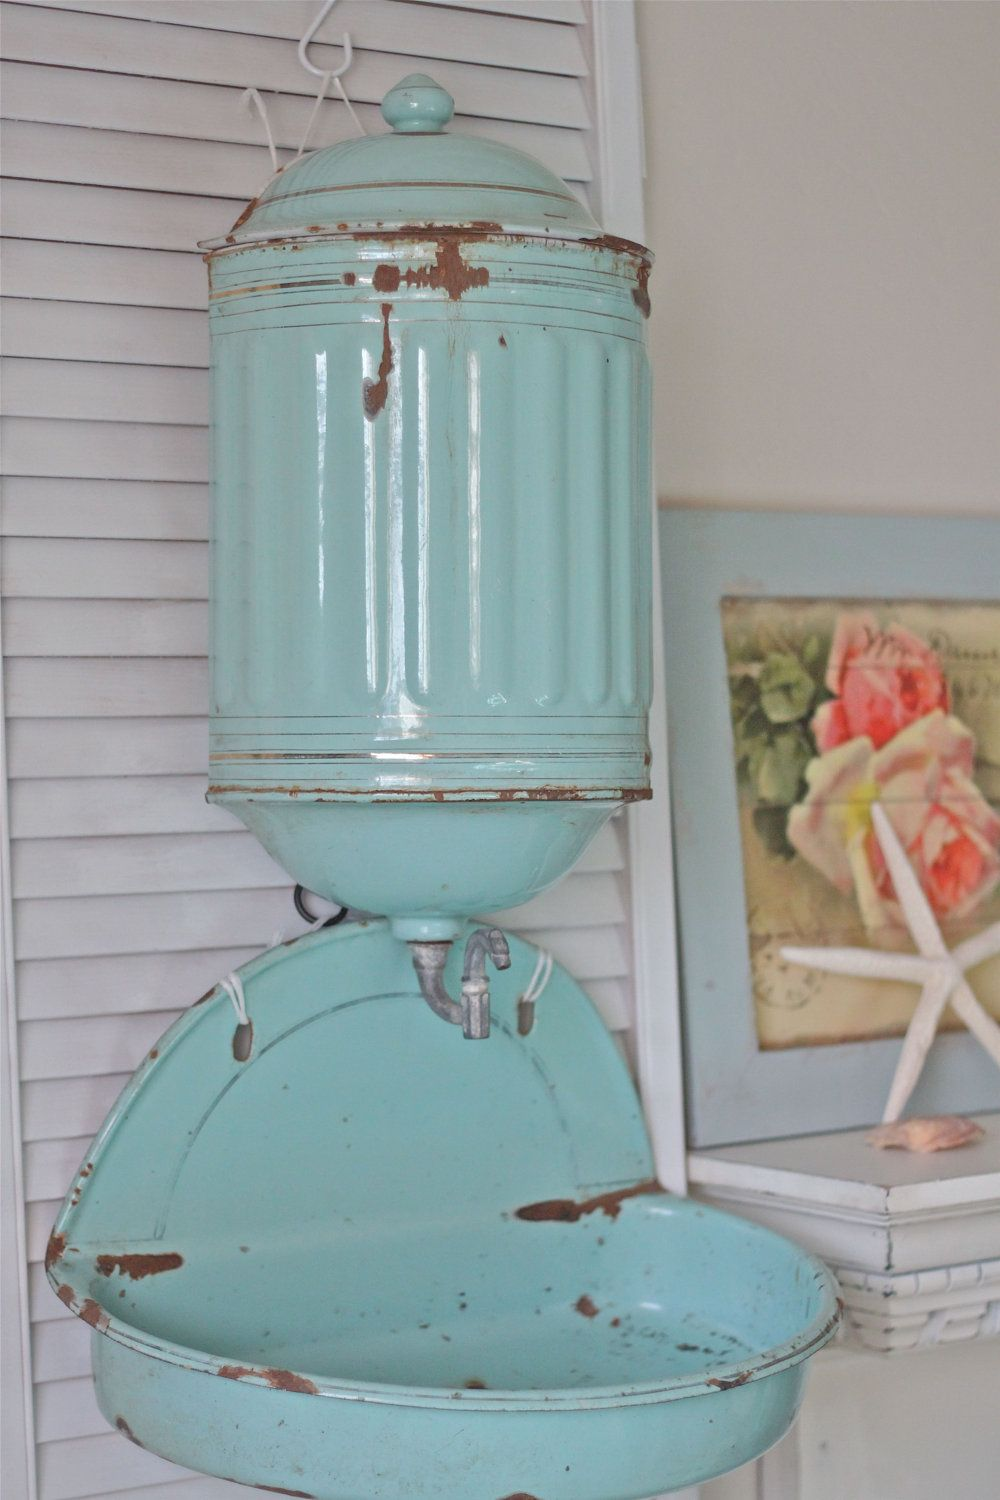 Lavabo Shabby Chic Antique French Enamelware Turquoise Aqua Lavabo Water Reservoir